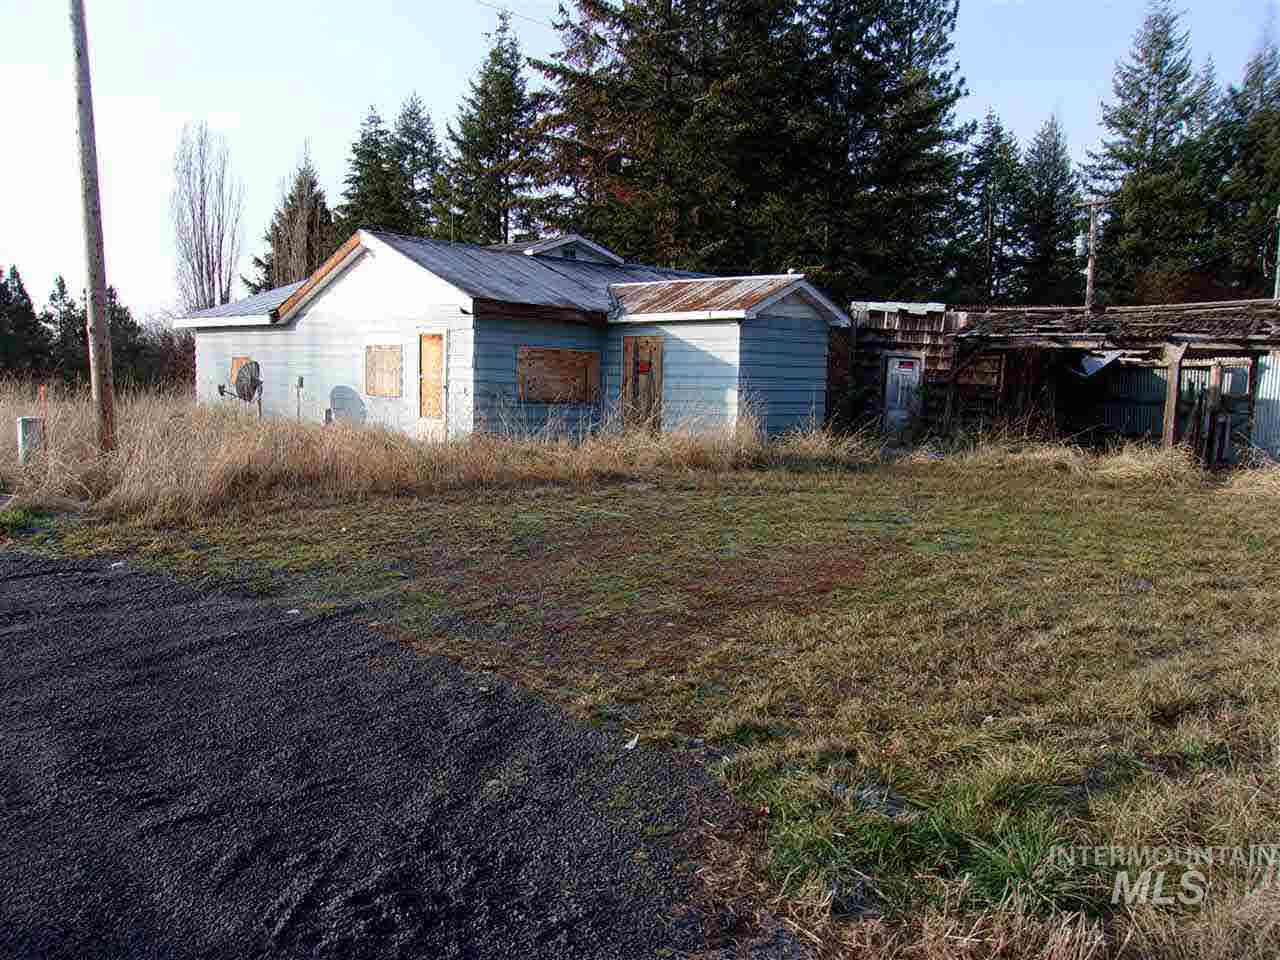 98 Lombard Road, Weippe, Idaho 83553, Land For Sale, Price $49,000, 98731623